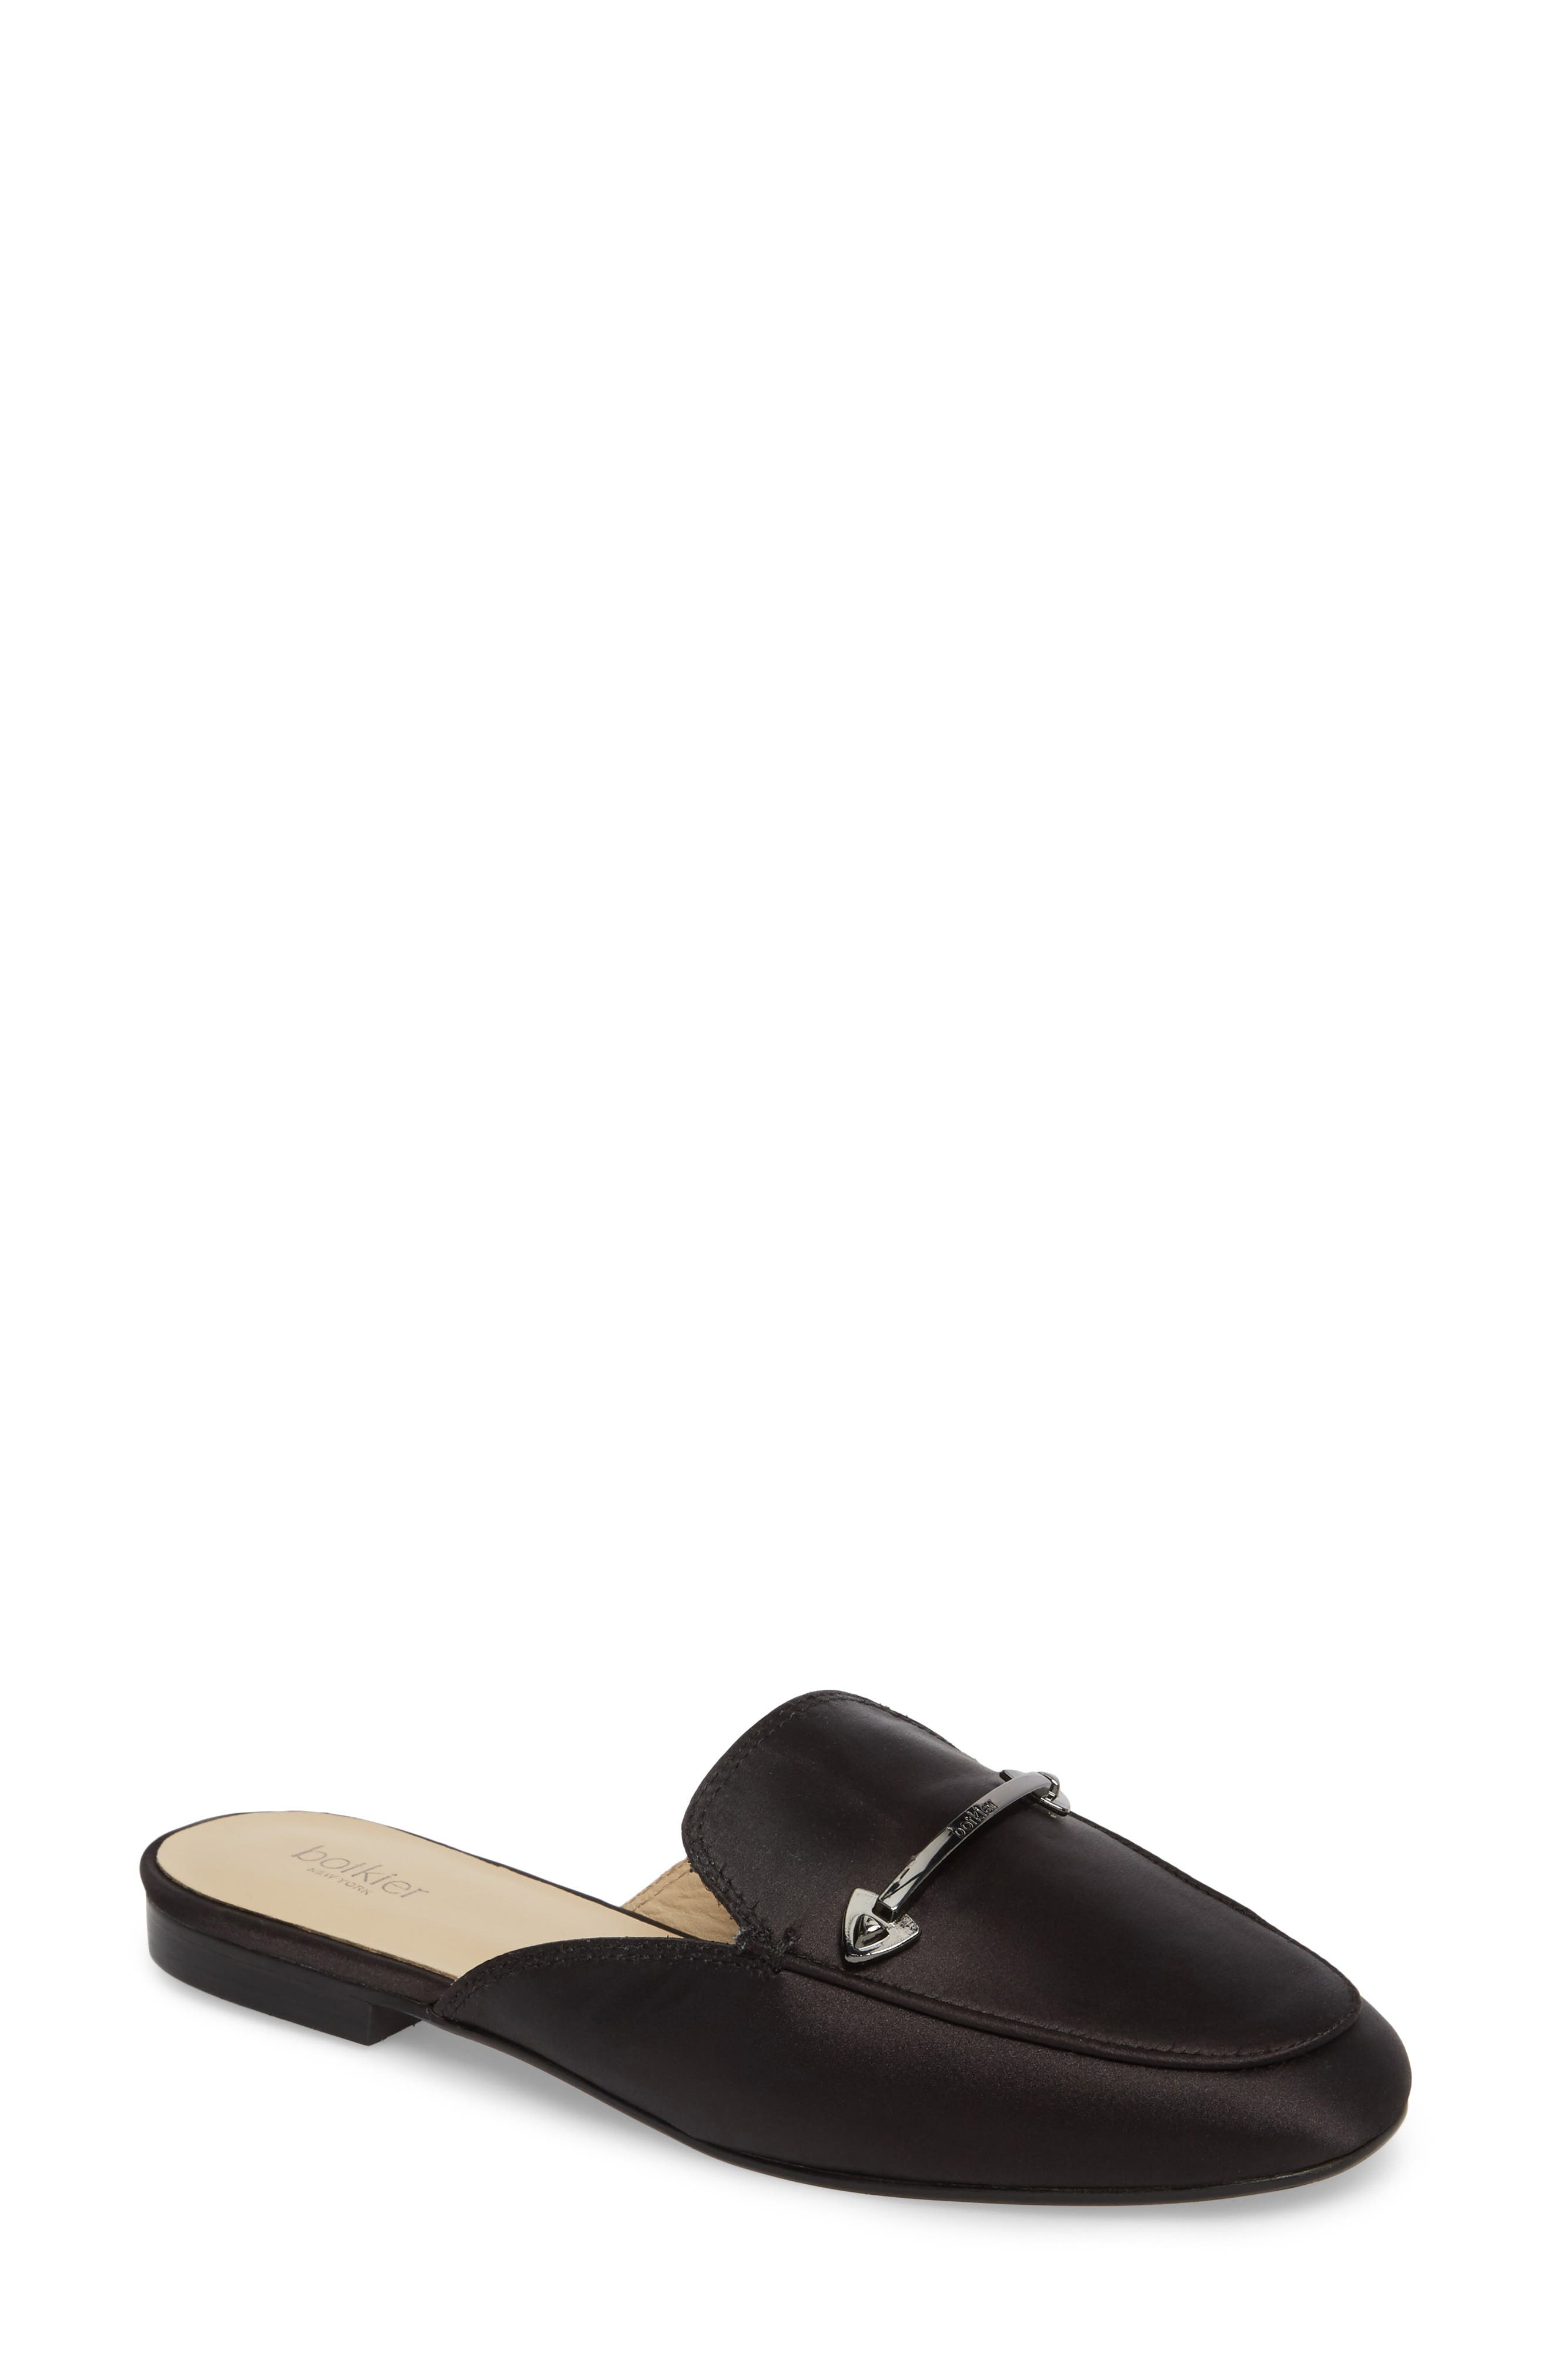 Clare Loafer Mule,                             Main thumbnail 1, color,                             003